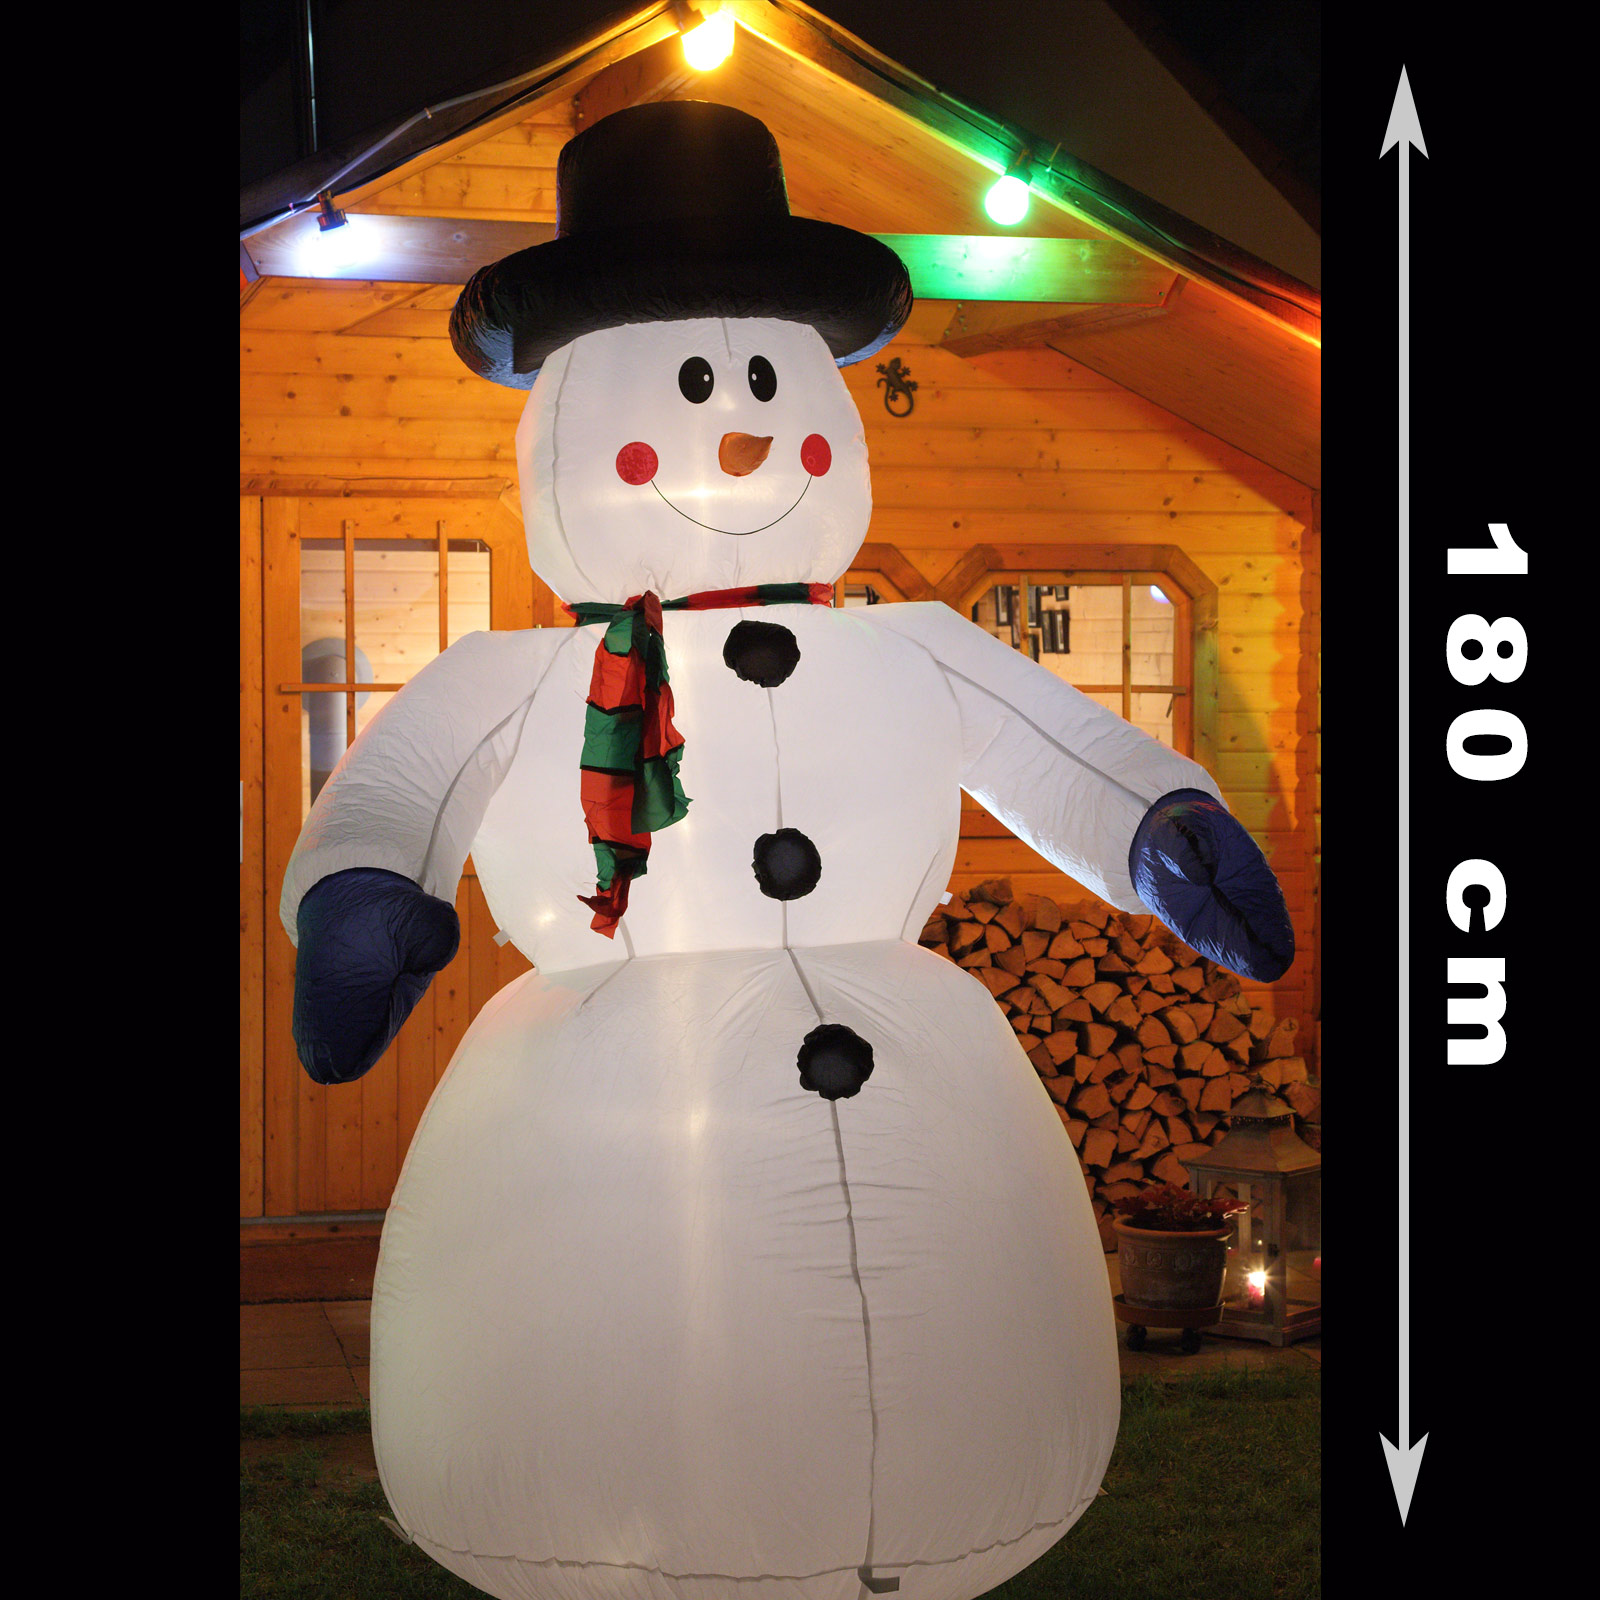 schneemann 180 cm weihnachtsfigur aufblasbar beleuchtet weihnachtsdeko au en ebay. Black Bedroom Furniture Sets. Home Design Ideas